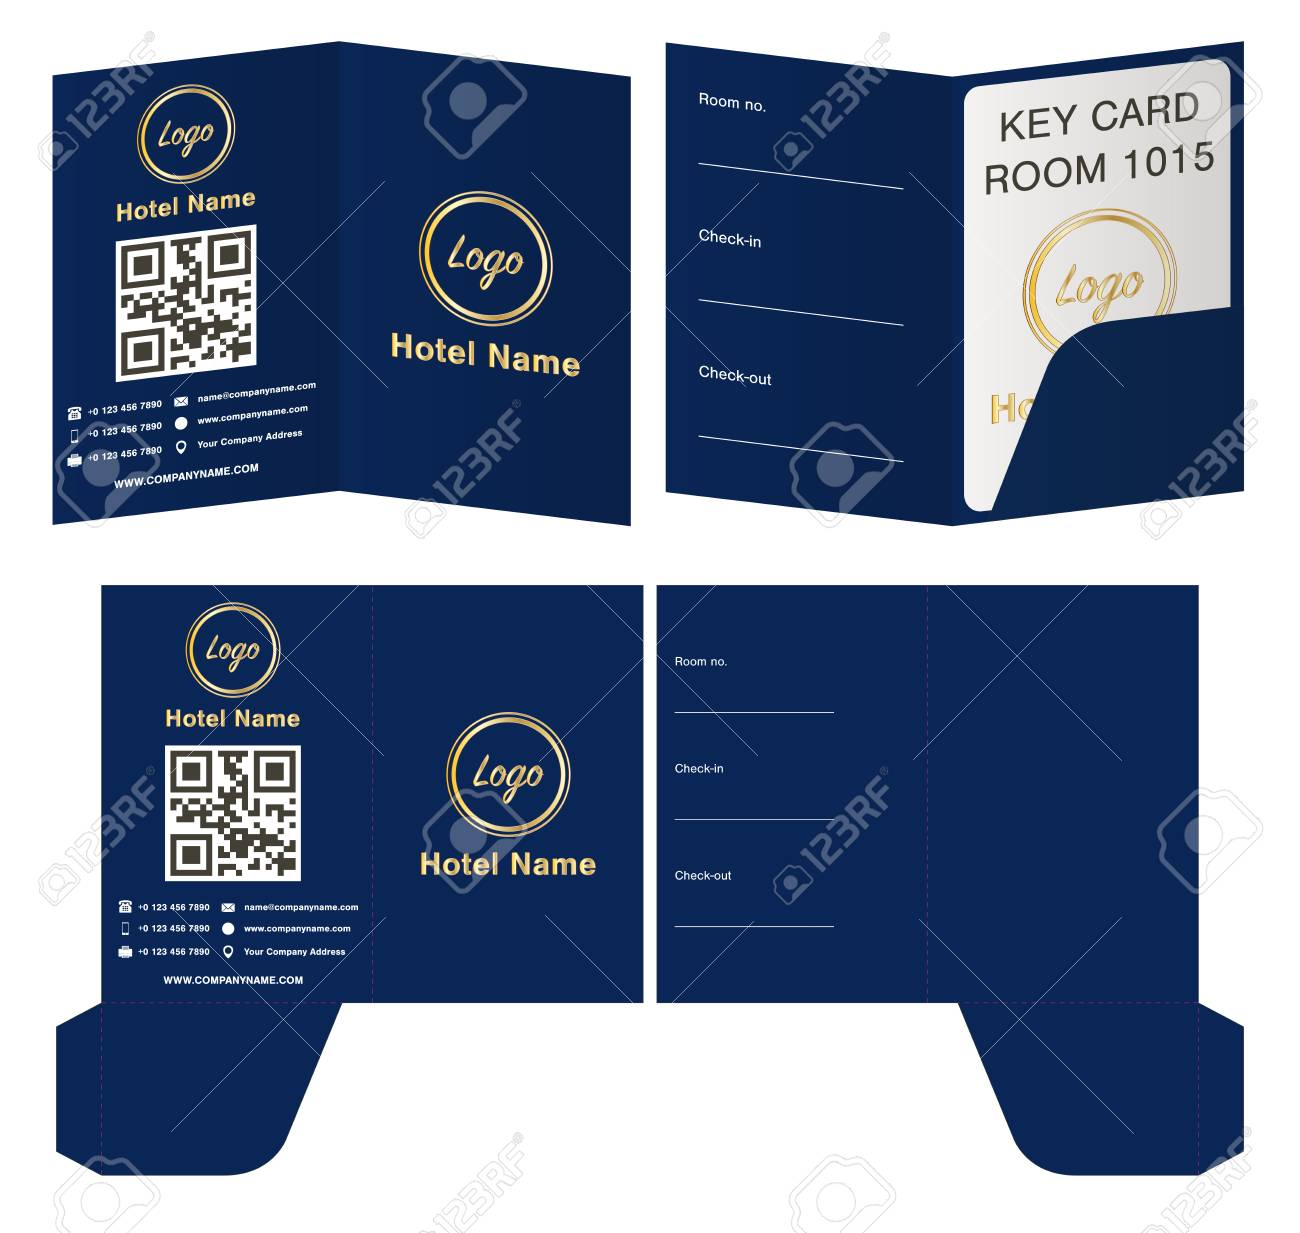 Hotel Key Card Holder Folder Package Template Design